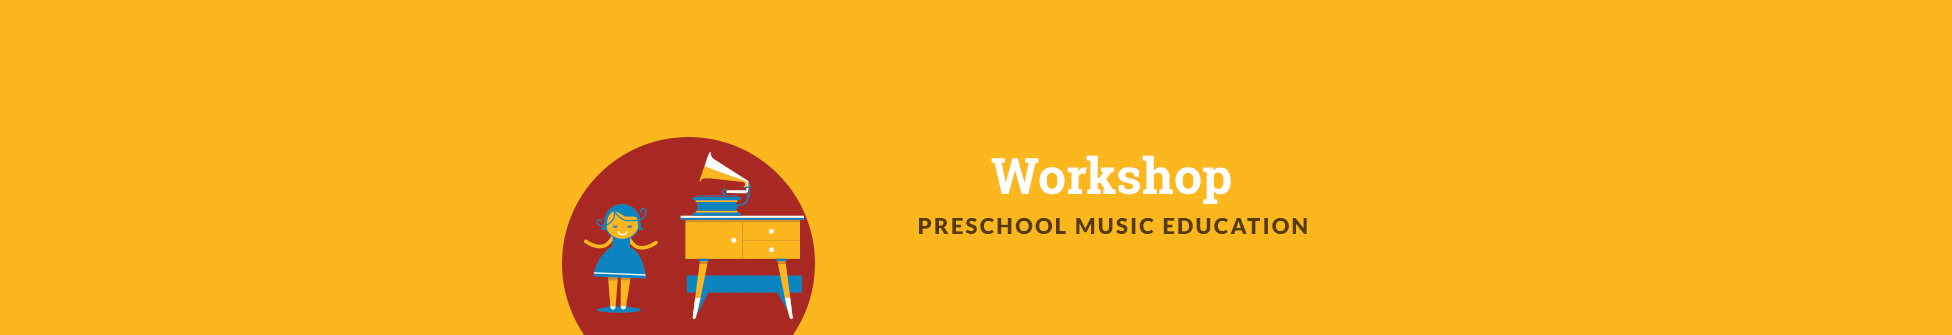 "preschool music education essay Introduction teaching music to preschoolers contributes to brain development ""the musician is constantly adjusting decisions on tempo, tone, style, rhythm, phrasing, and feeling—training the brain to become incredibly good at organizing and conducting numerous activities at once."